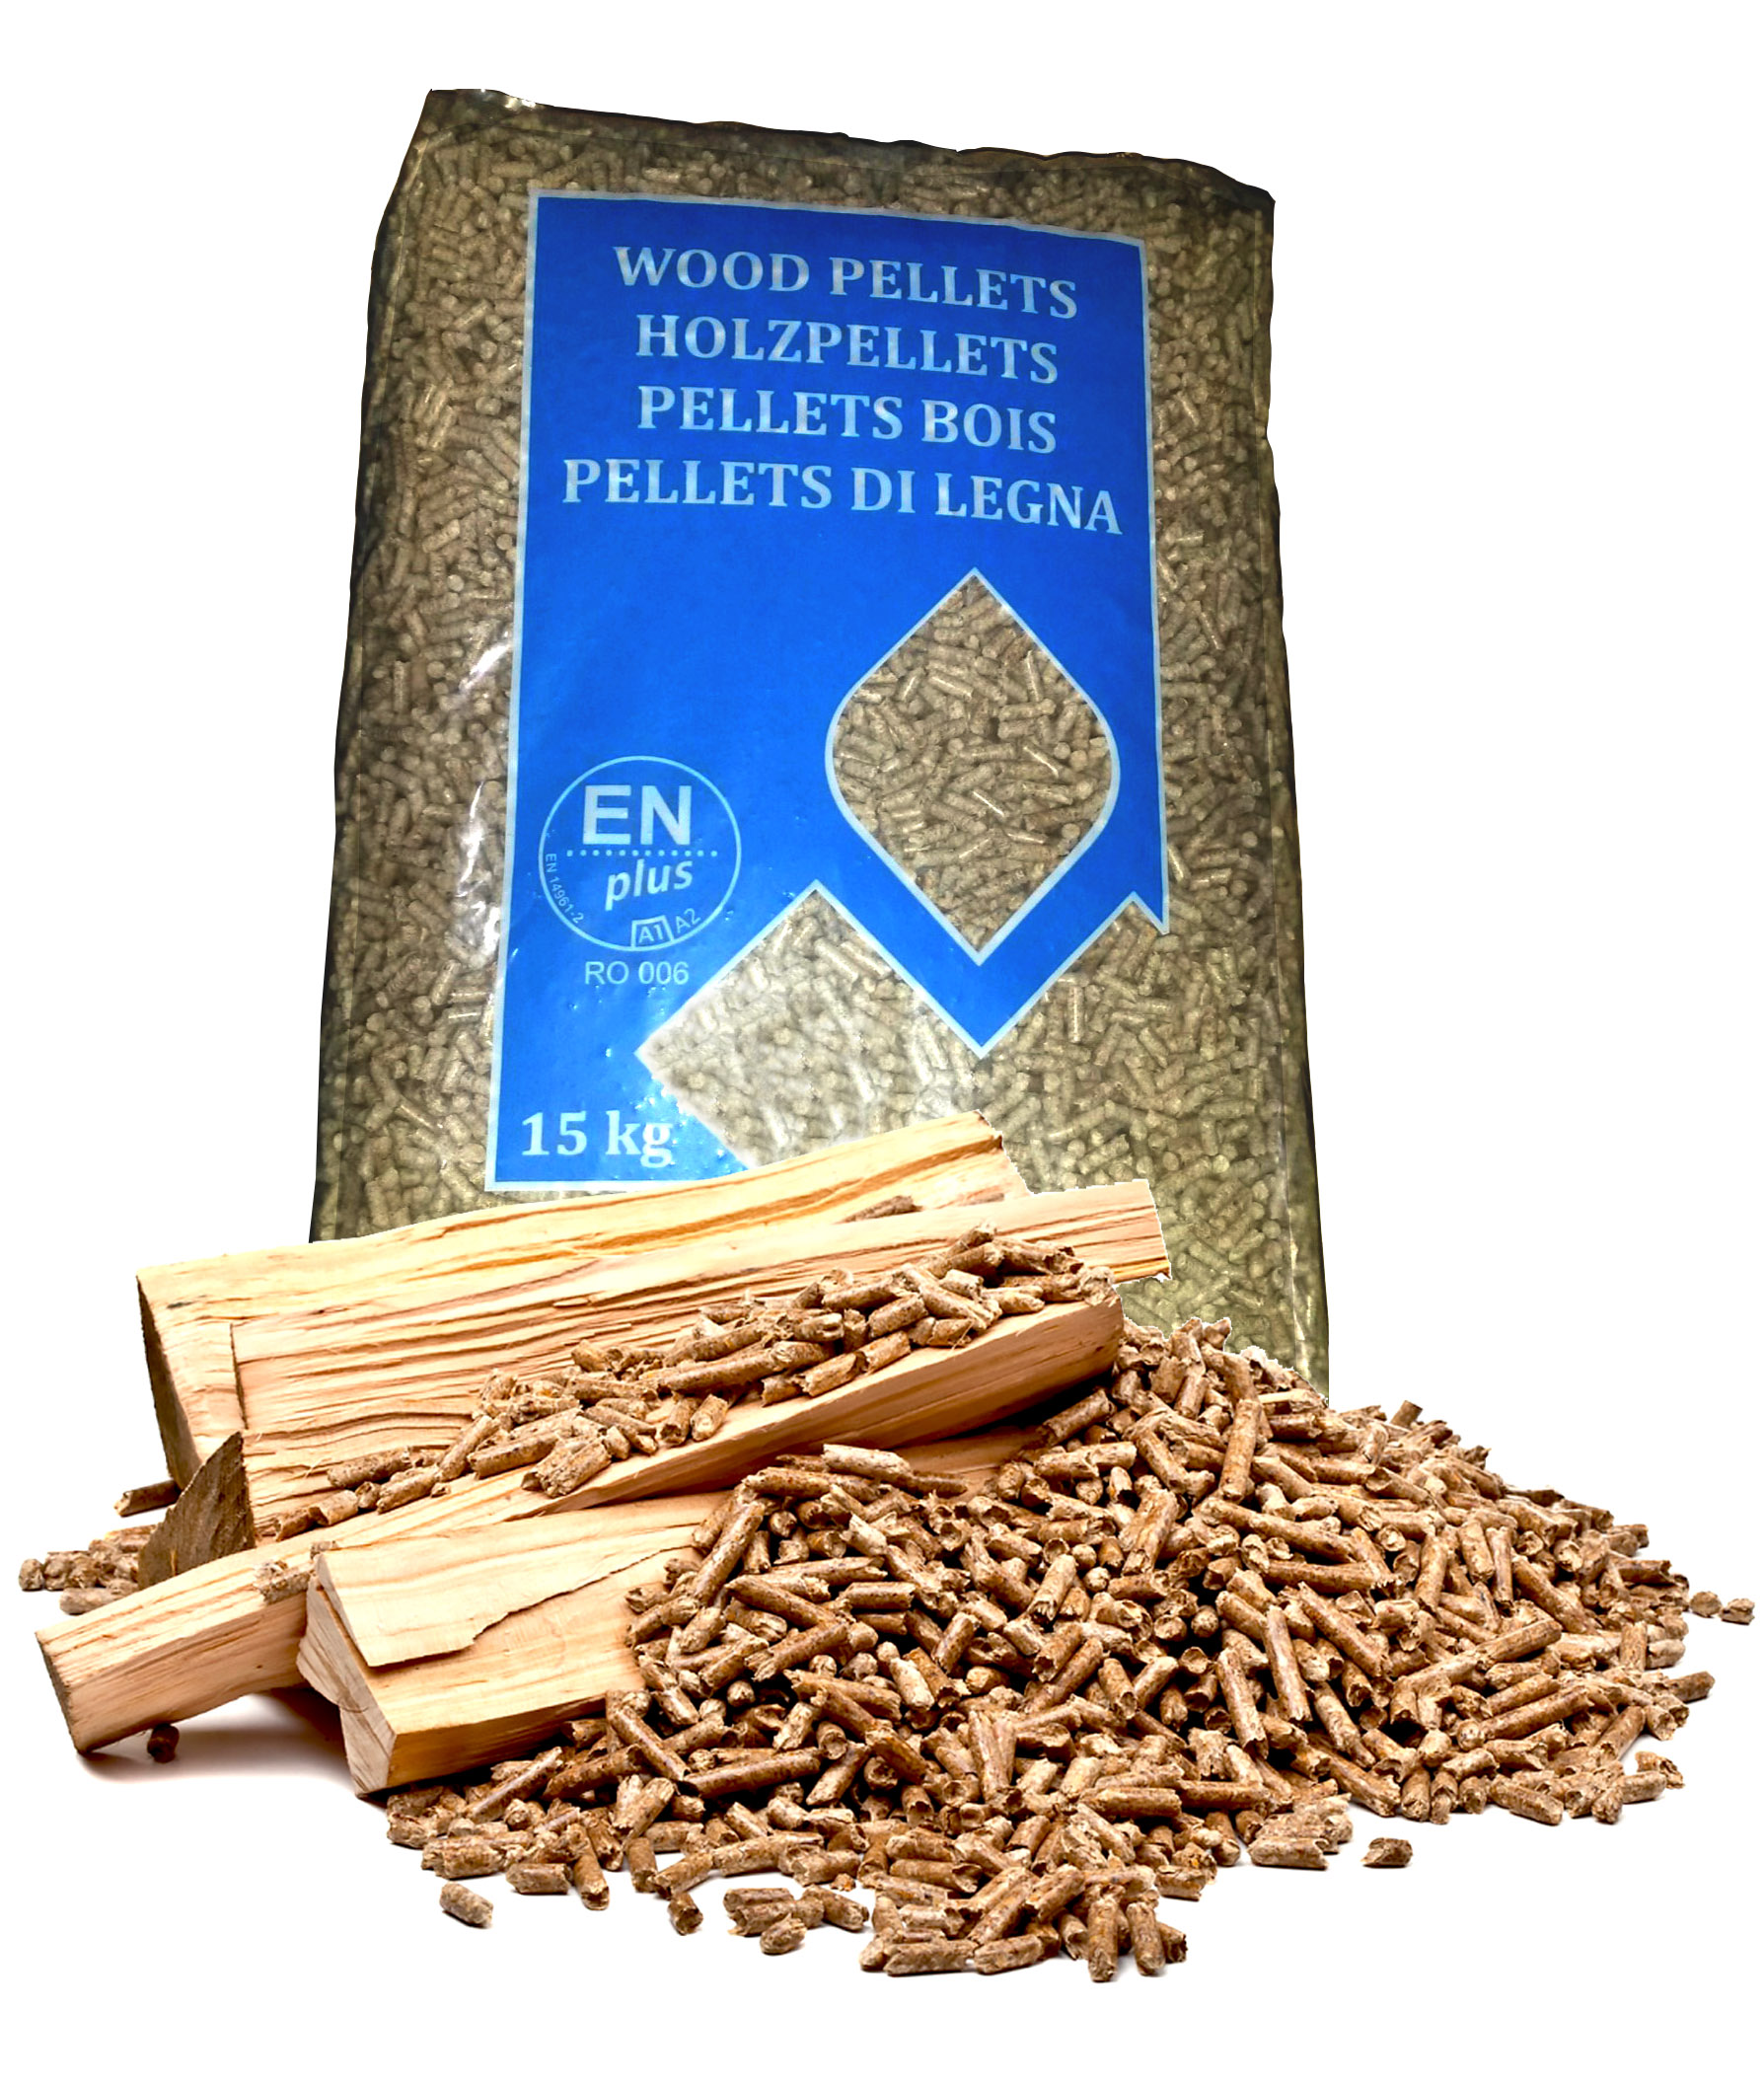 Wood pellets losan - How to make wood pellets wise investment ...